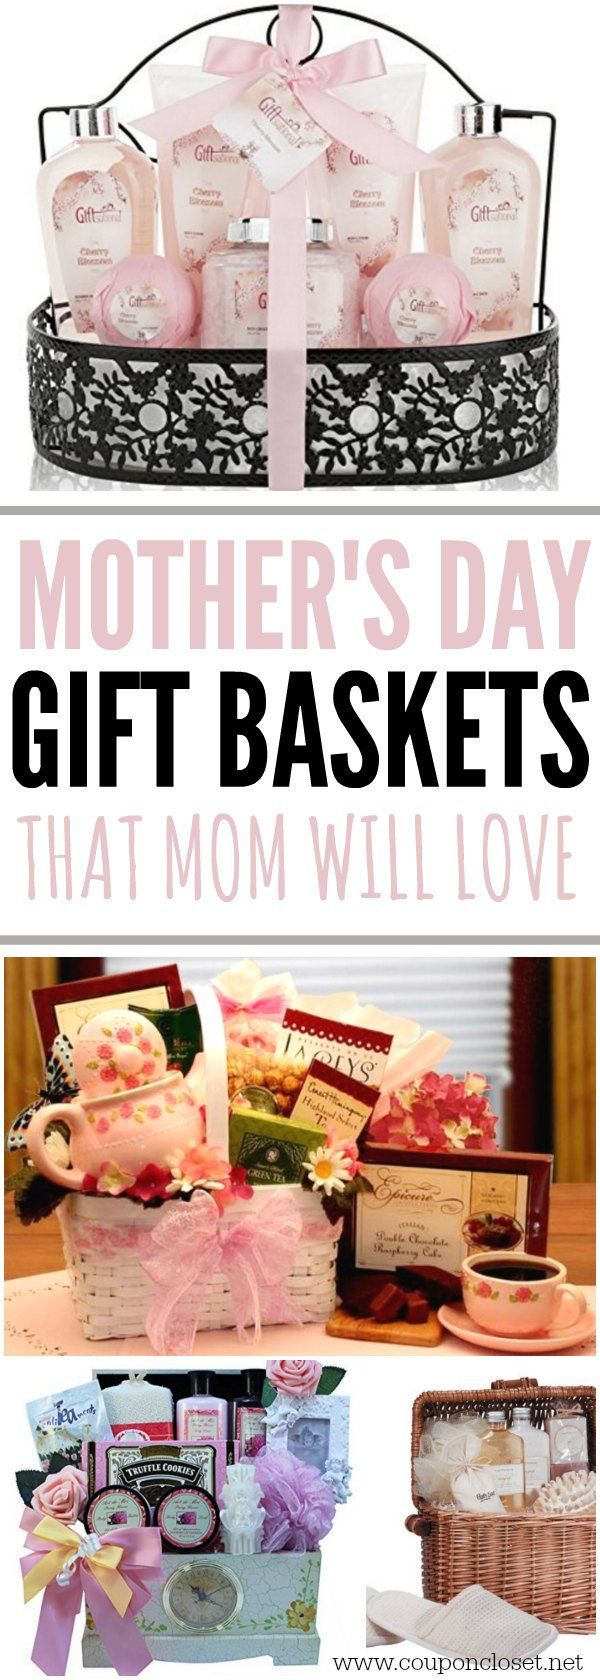 Here are some fun Mother's Day Gift Basket Ideas that Mom will love. This Mother's day pamper mom with one of these baskets for easy Mother's Day gifts.